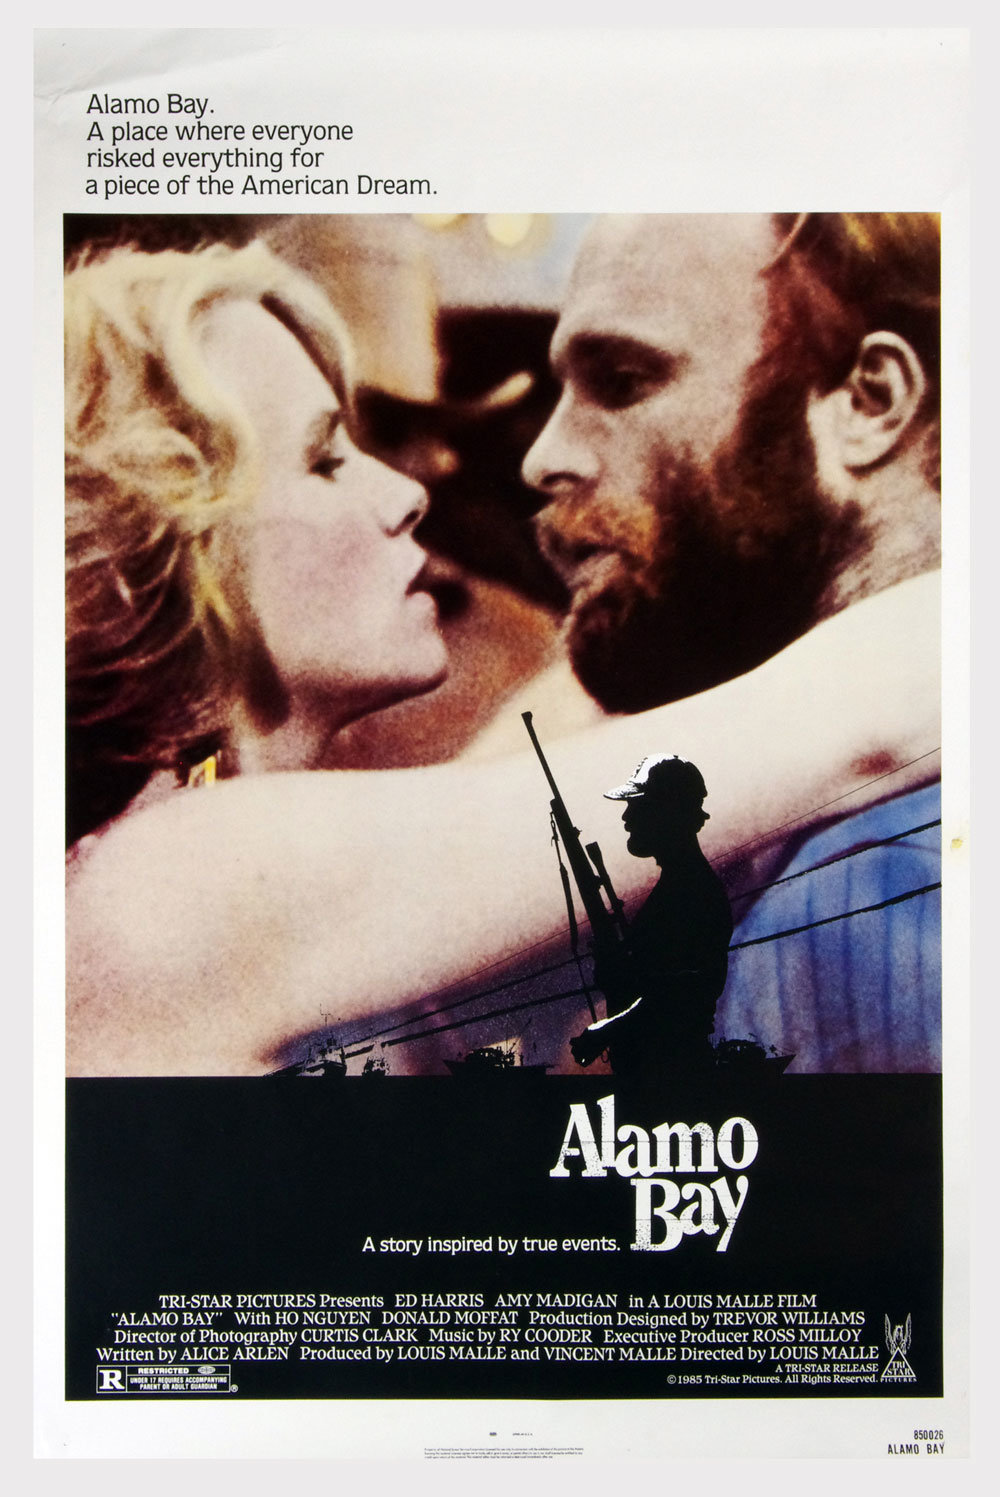 Alamo Bay Poster 1985 Ed Harris Amy Medigan 27 x 41 1 Sheet